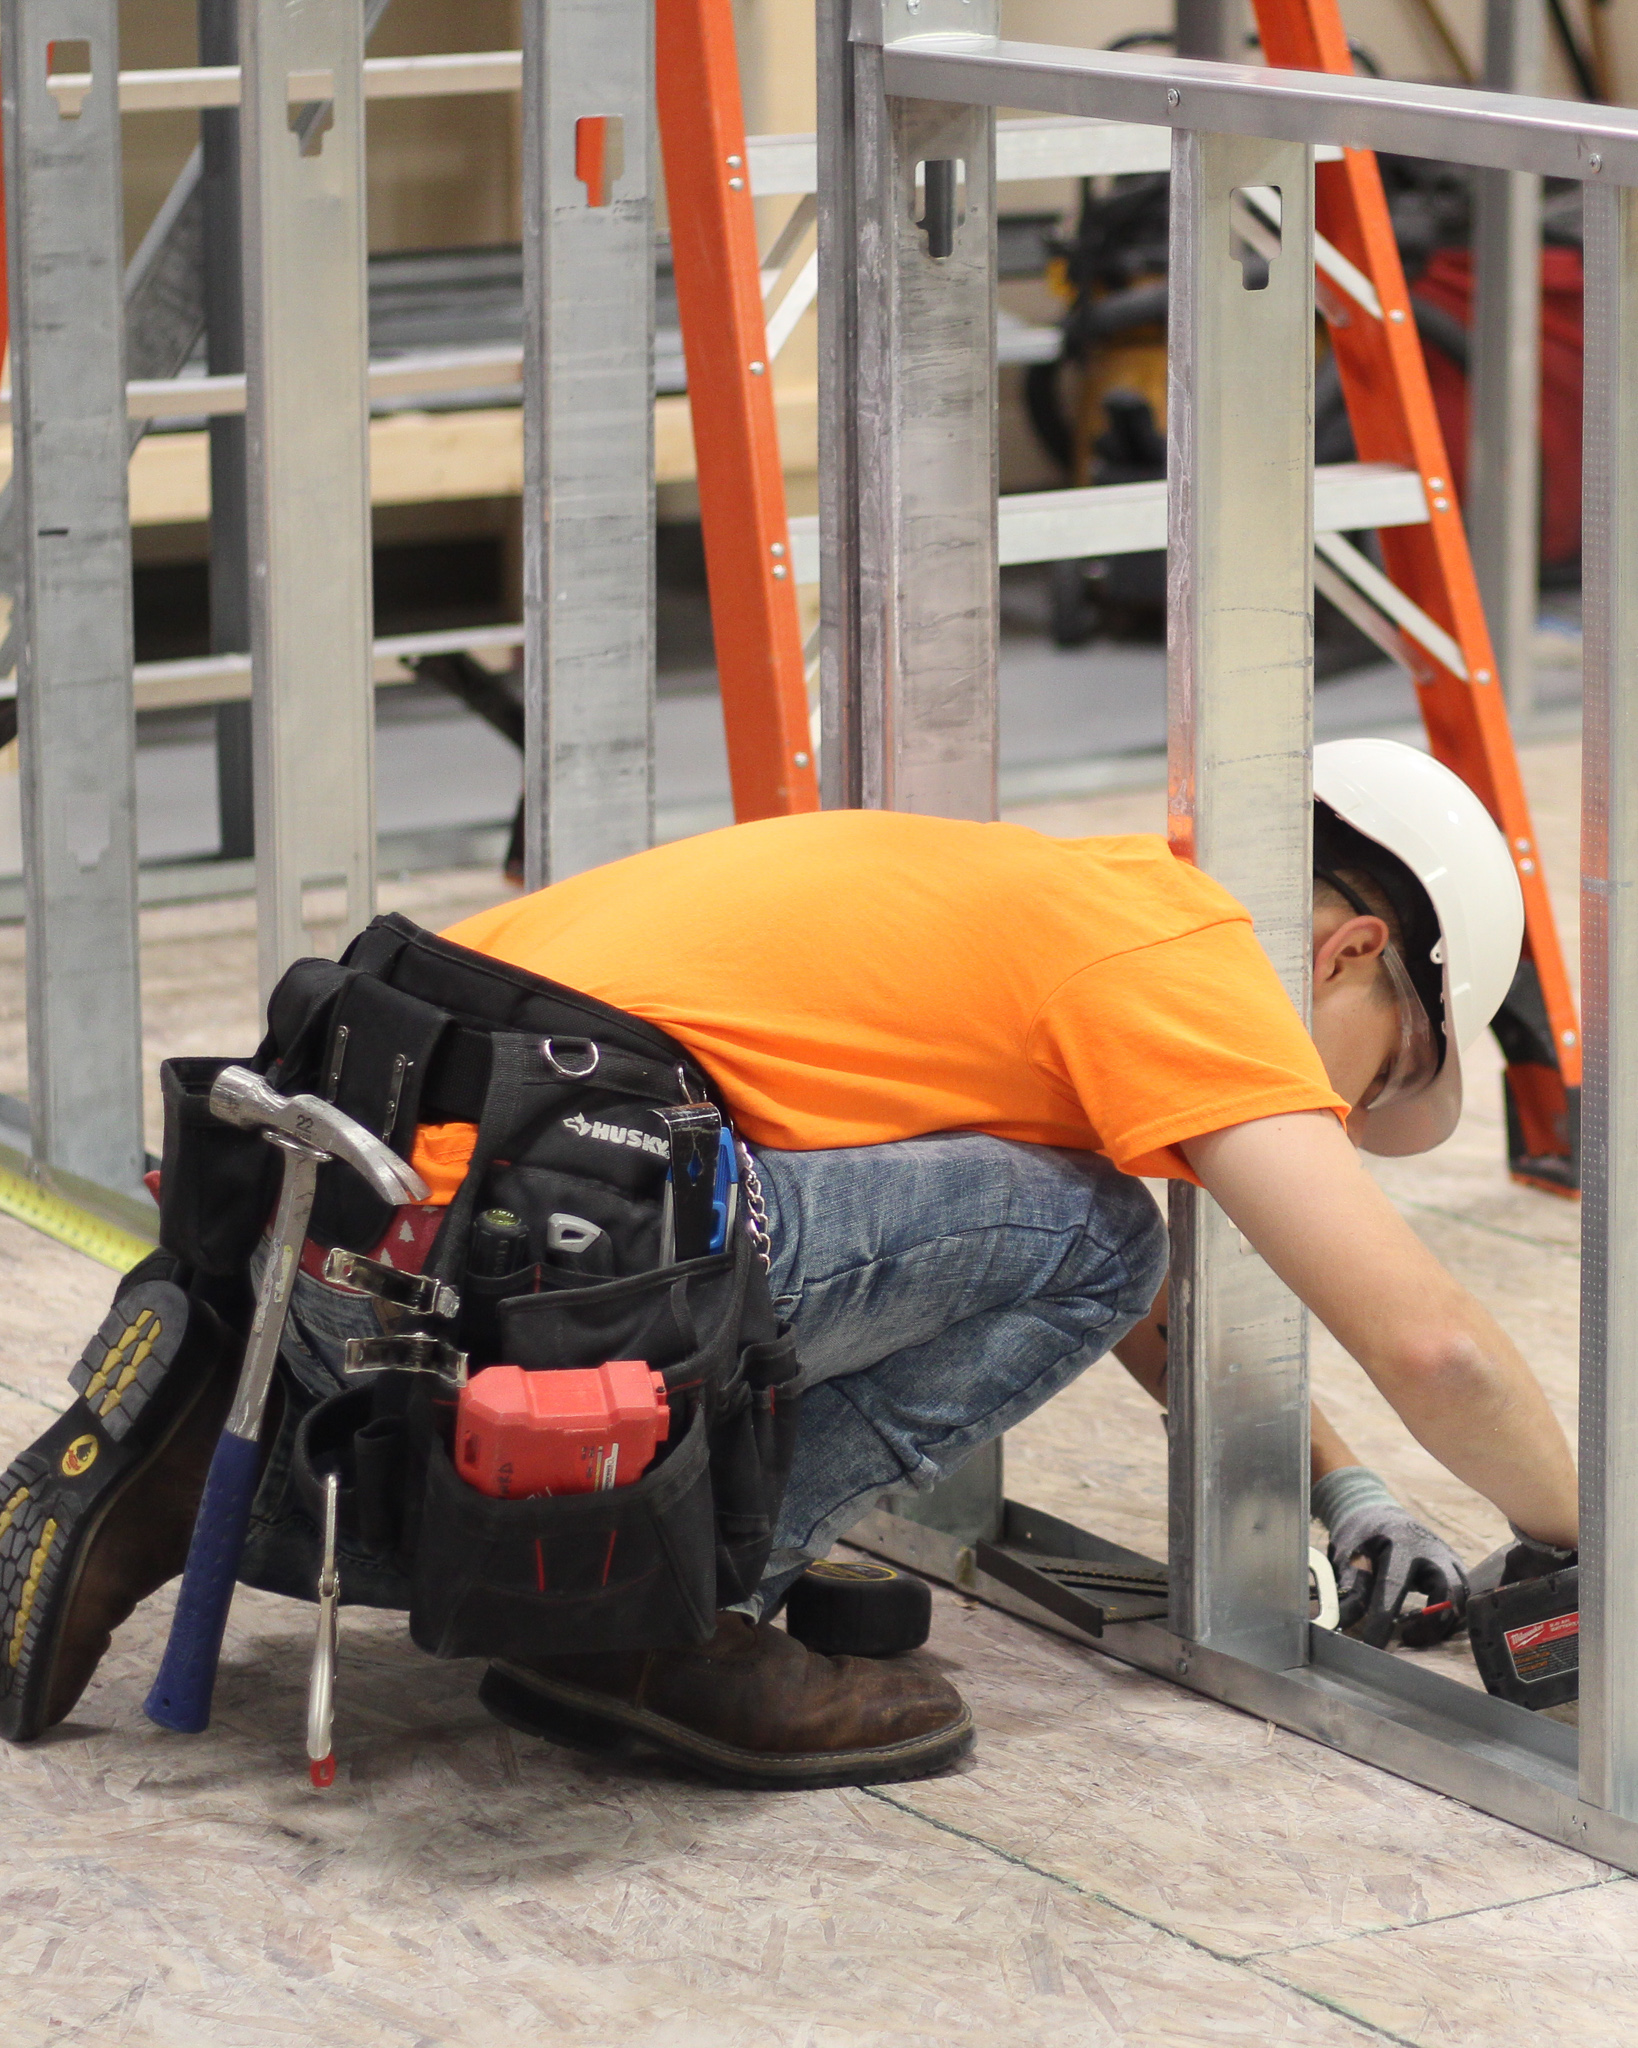 A boy in an orange shirt and jeans wears a toolbelt. He is using a drill to attach metal support beams.